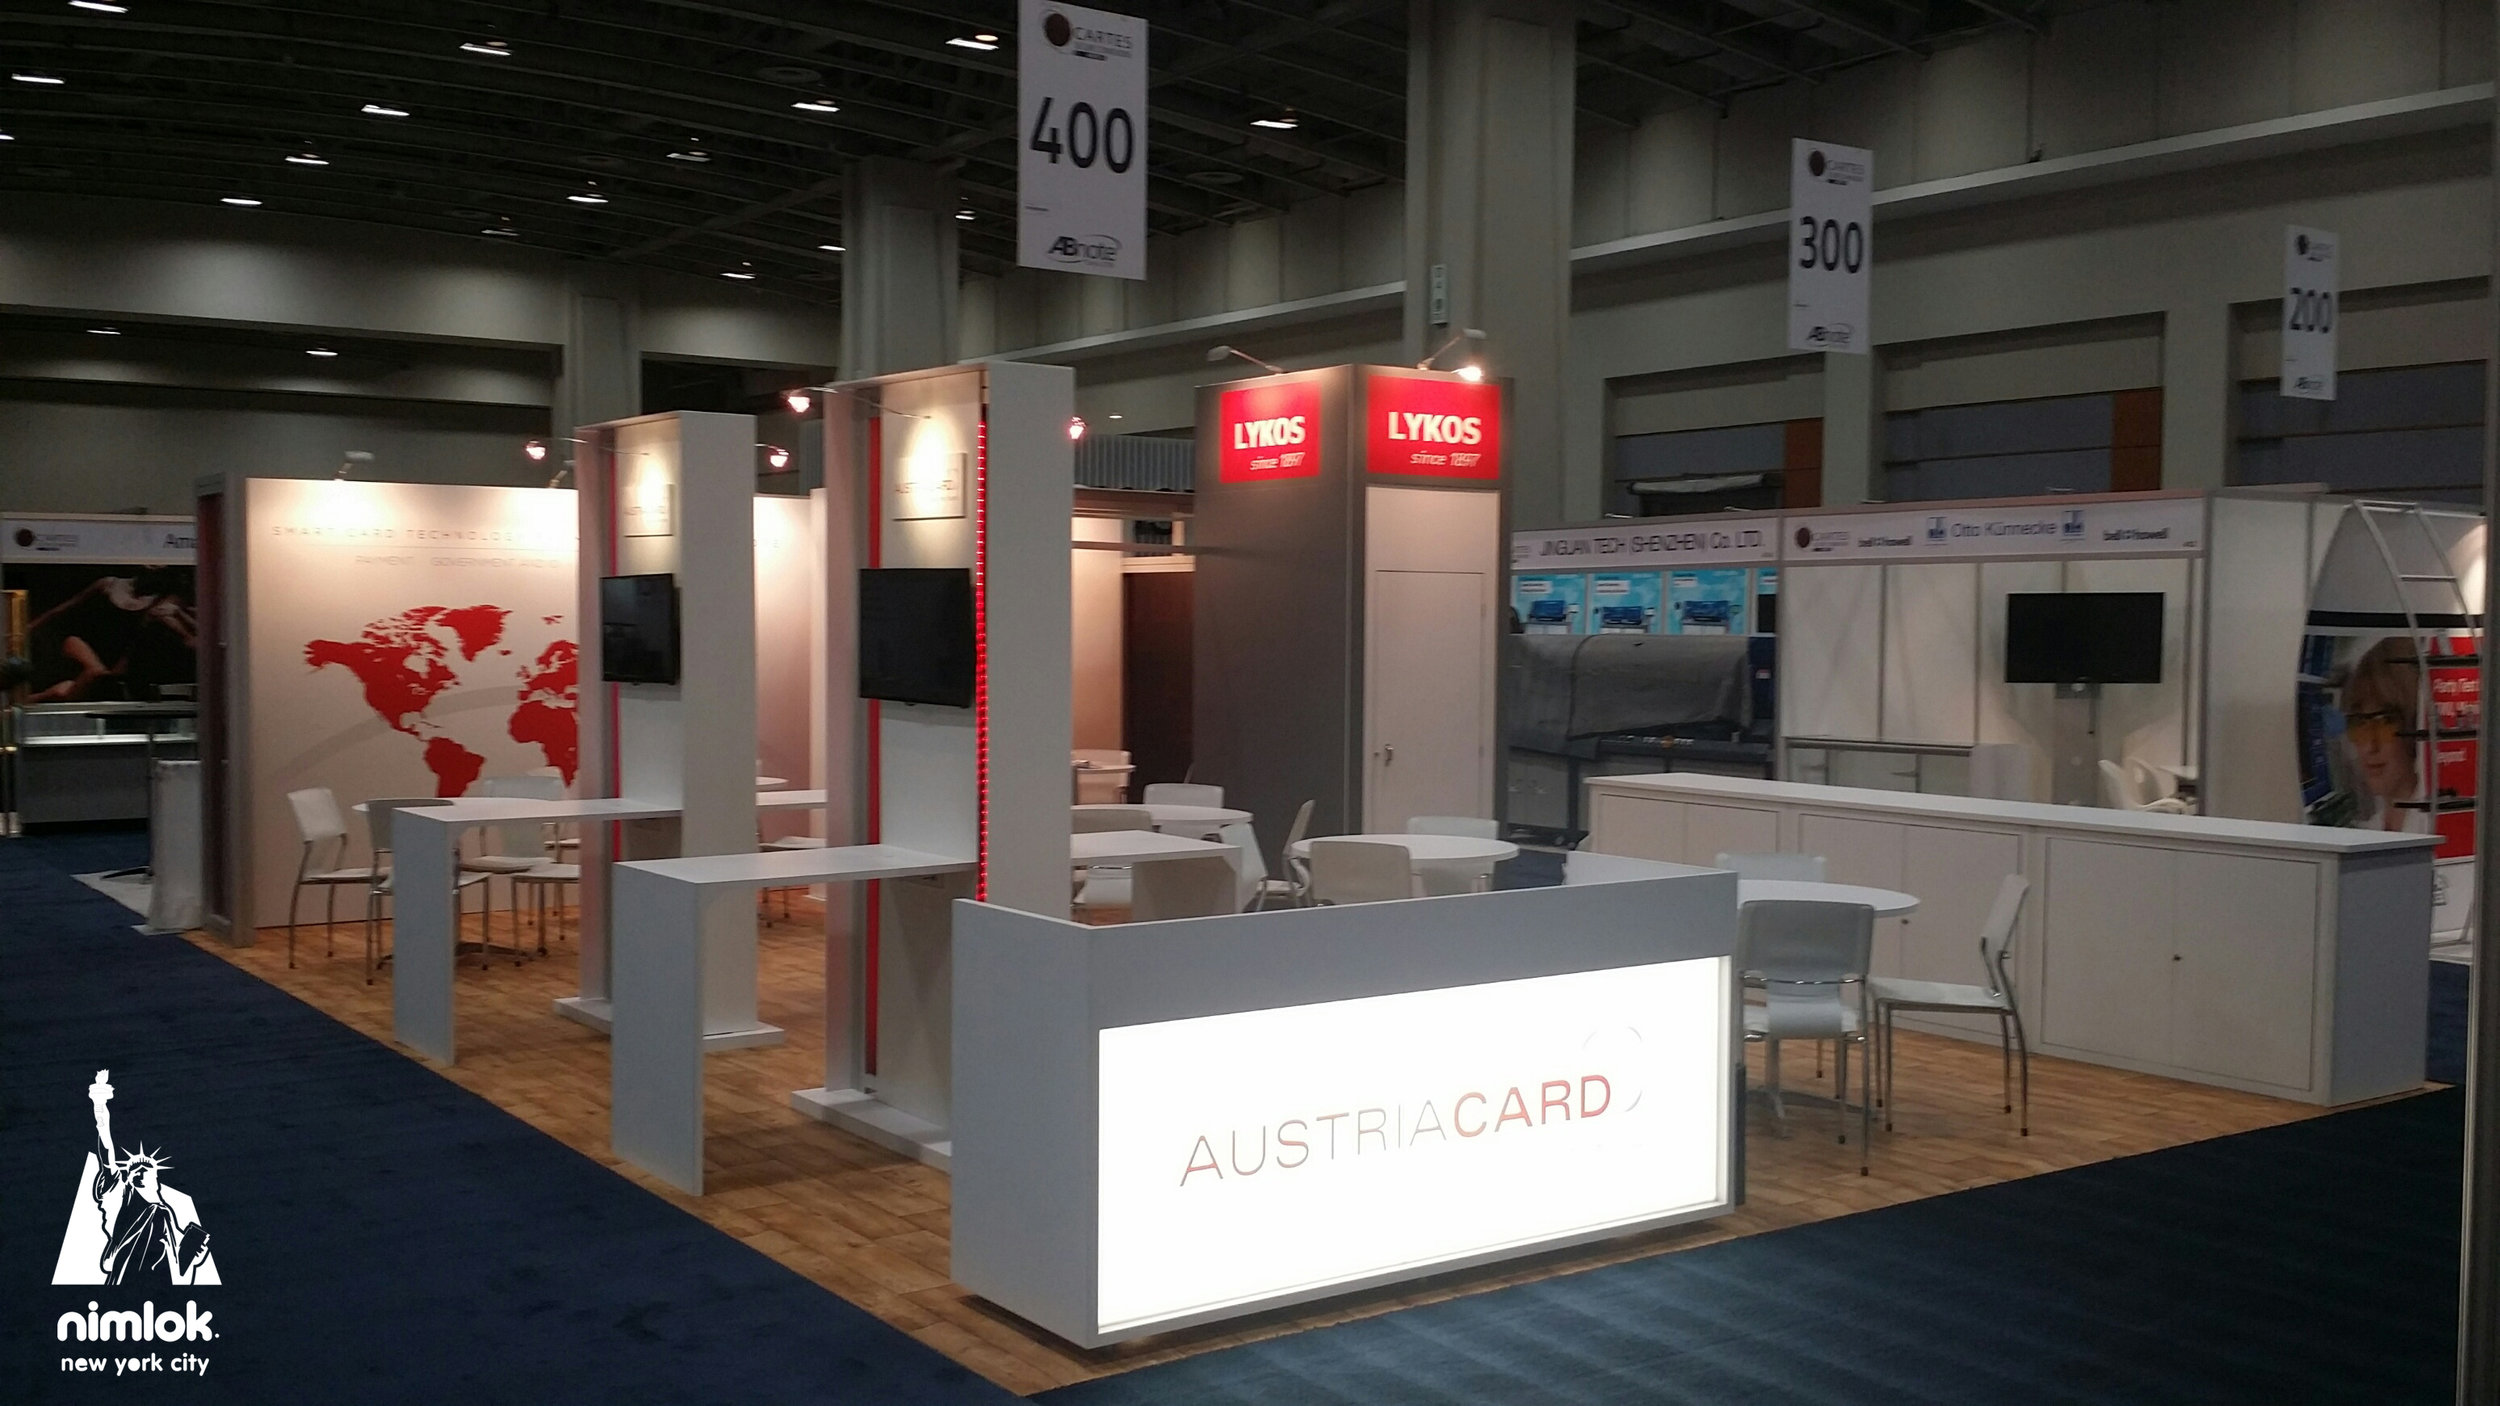 Cartes America Trade Show Display by Nimlok NYC